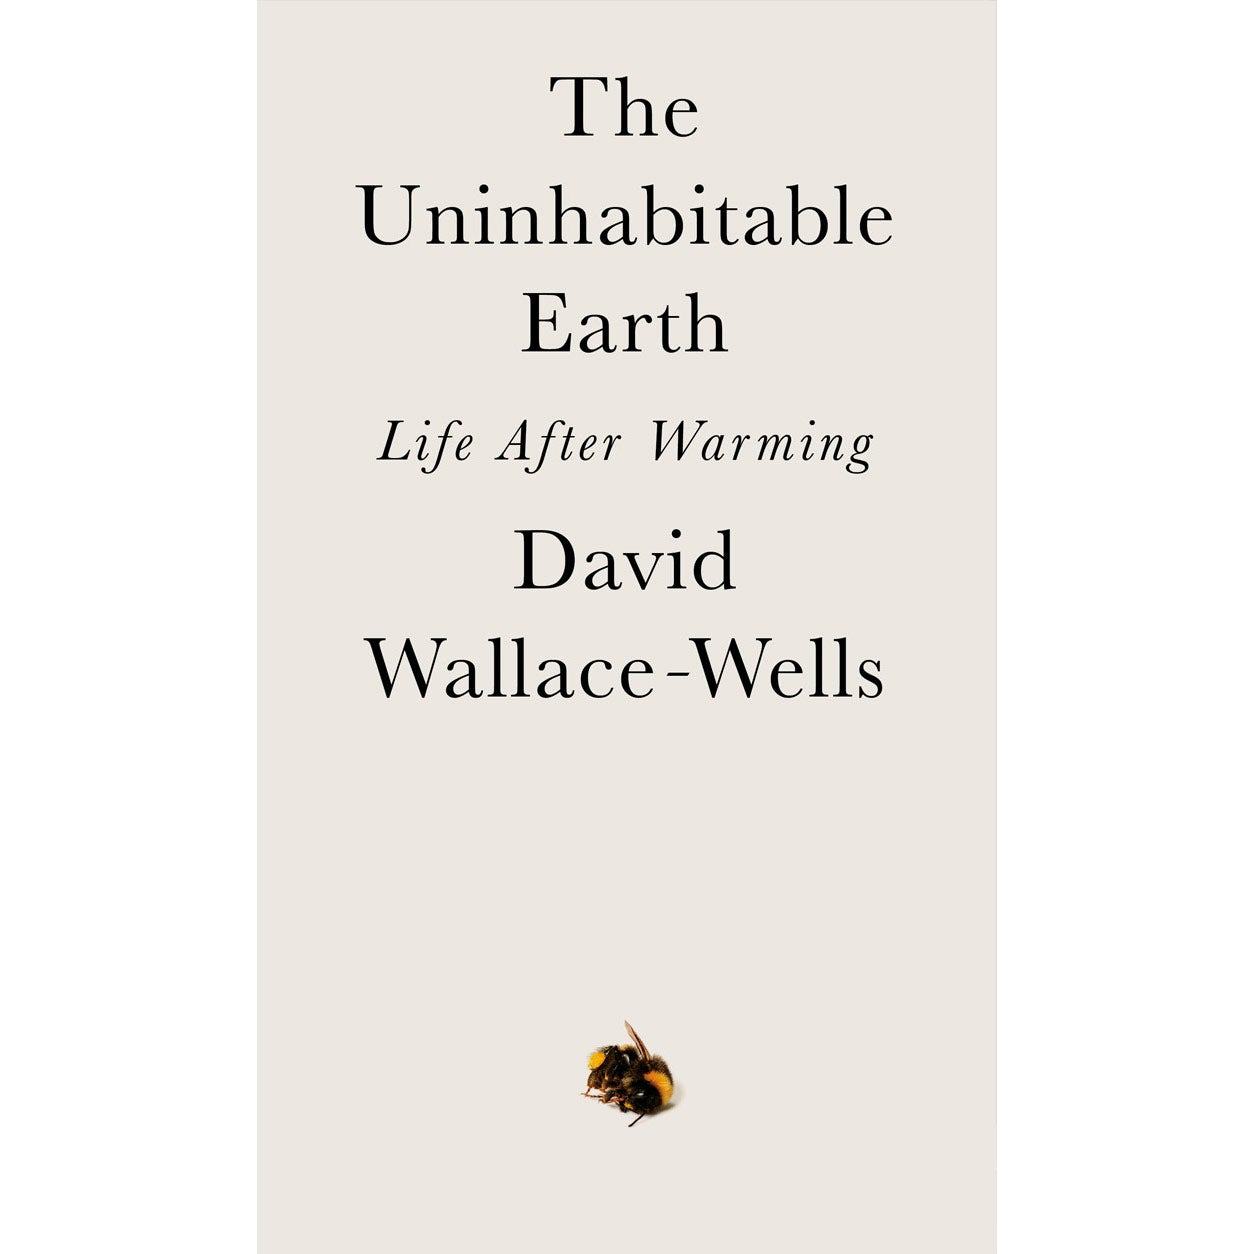 The Uninhabitable Earth book cover.